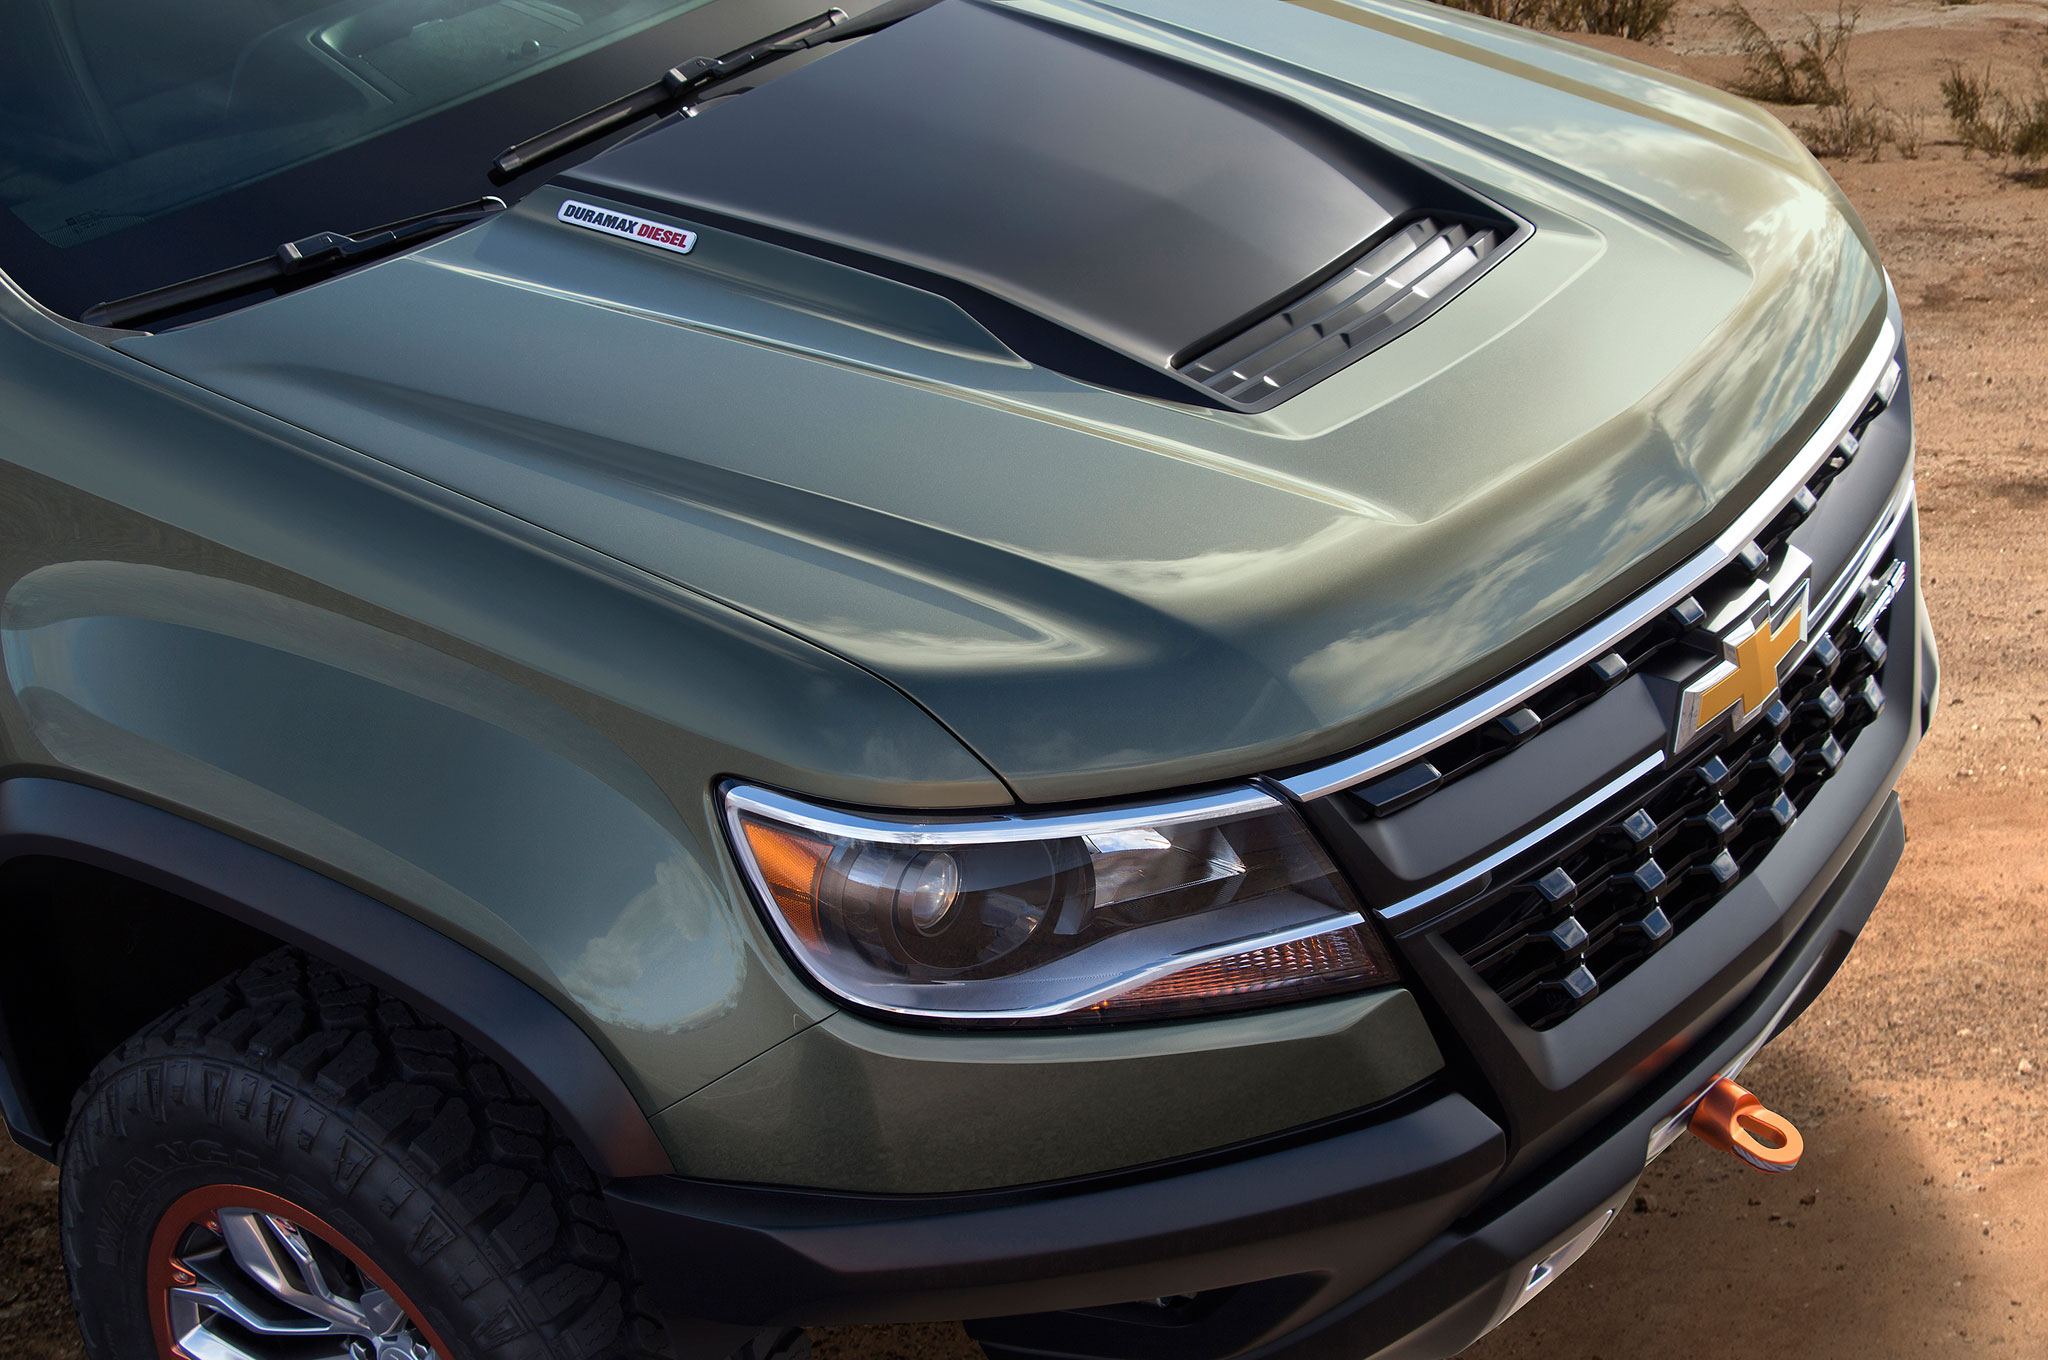 2015 Chevrolet Colorado ZR2 bonet